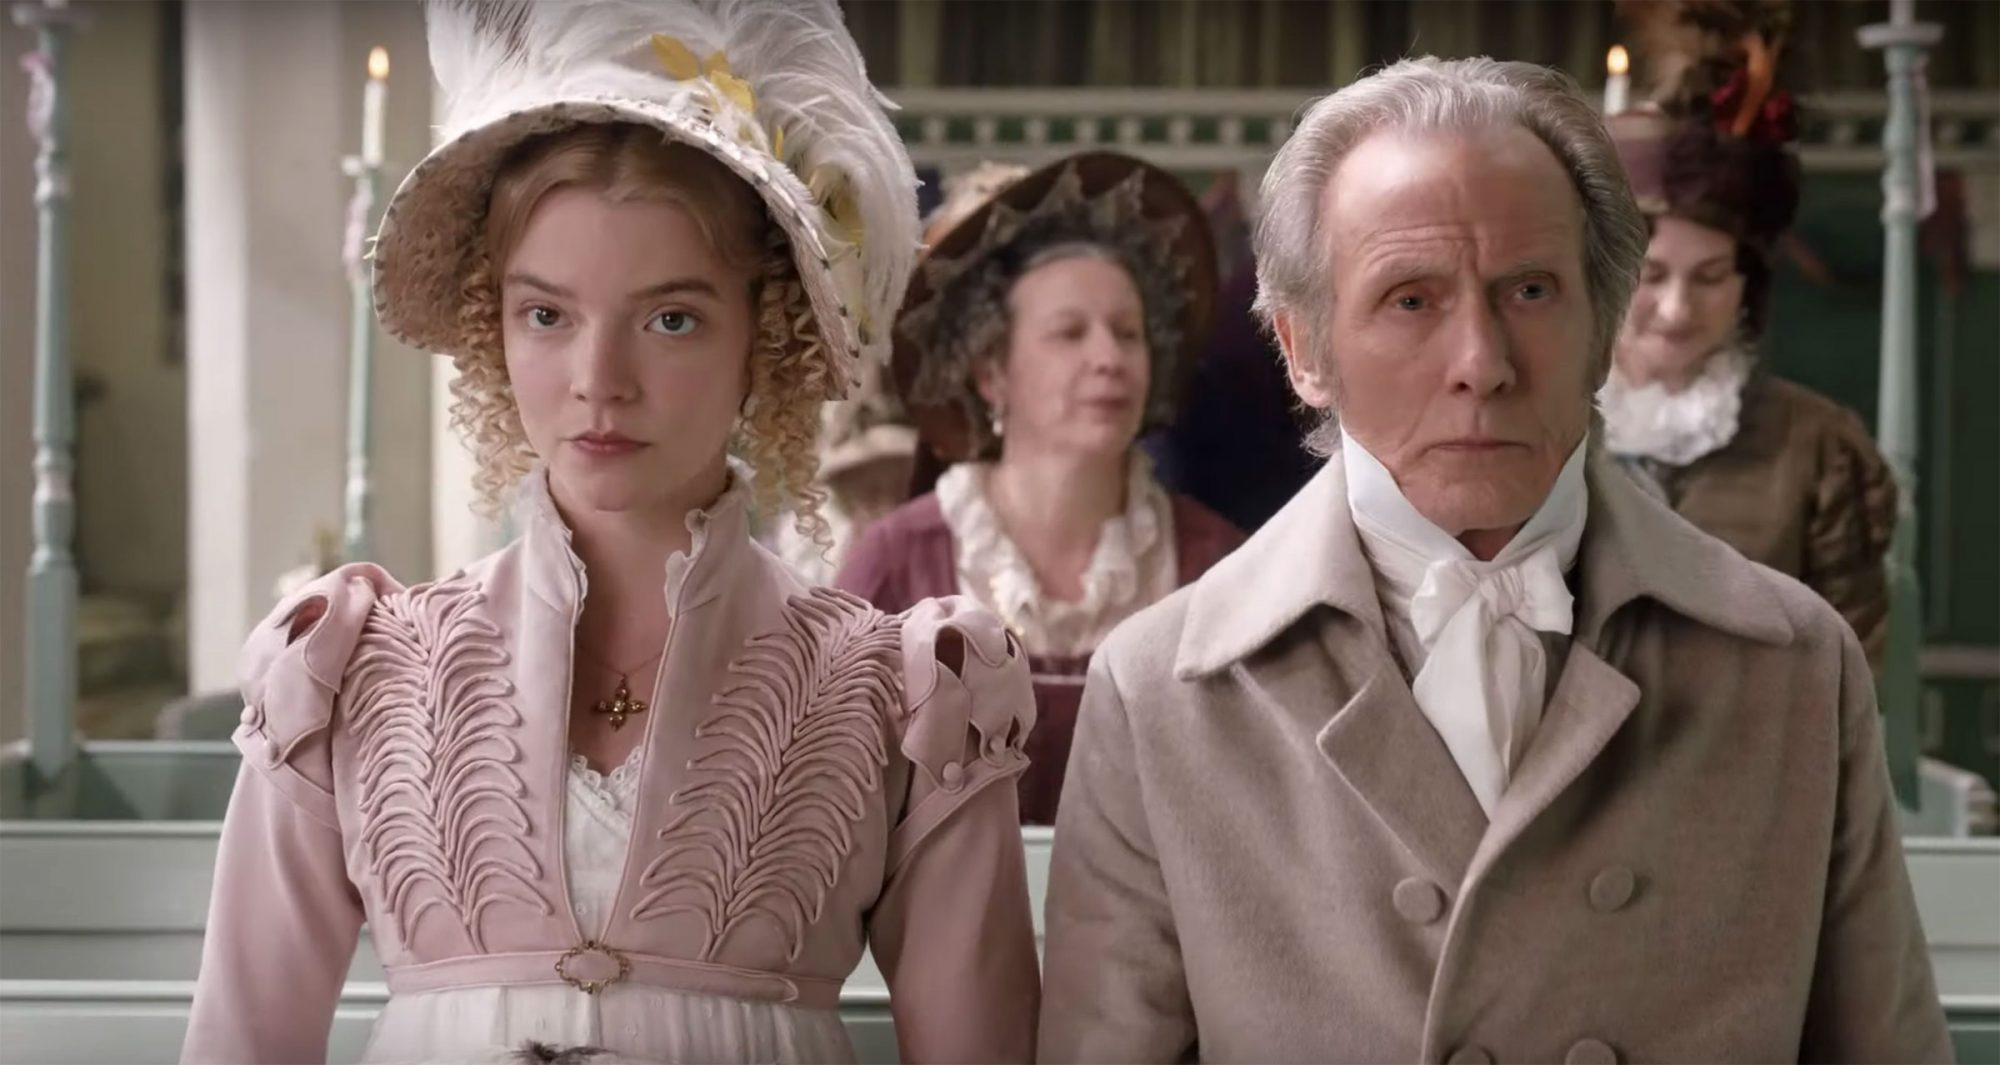 Emma movie trailer remixes Jane Austen's classic book | EW.com